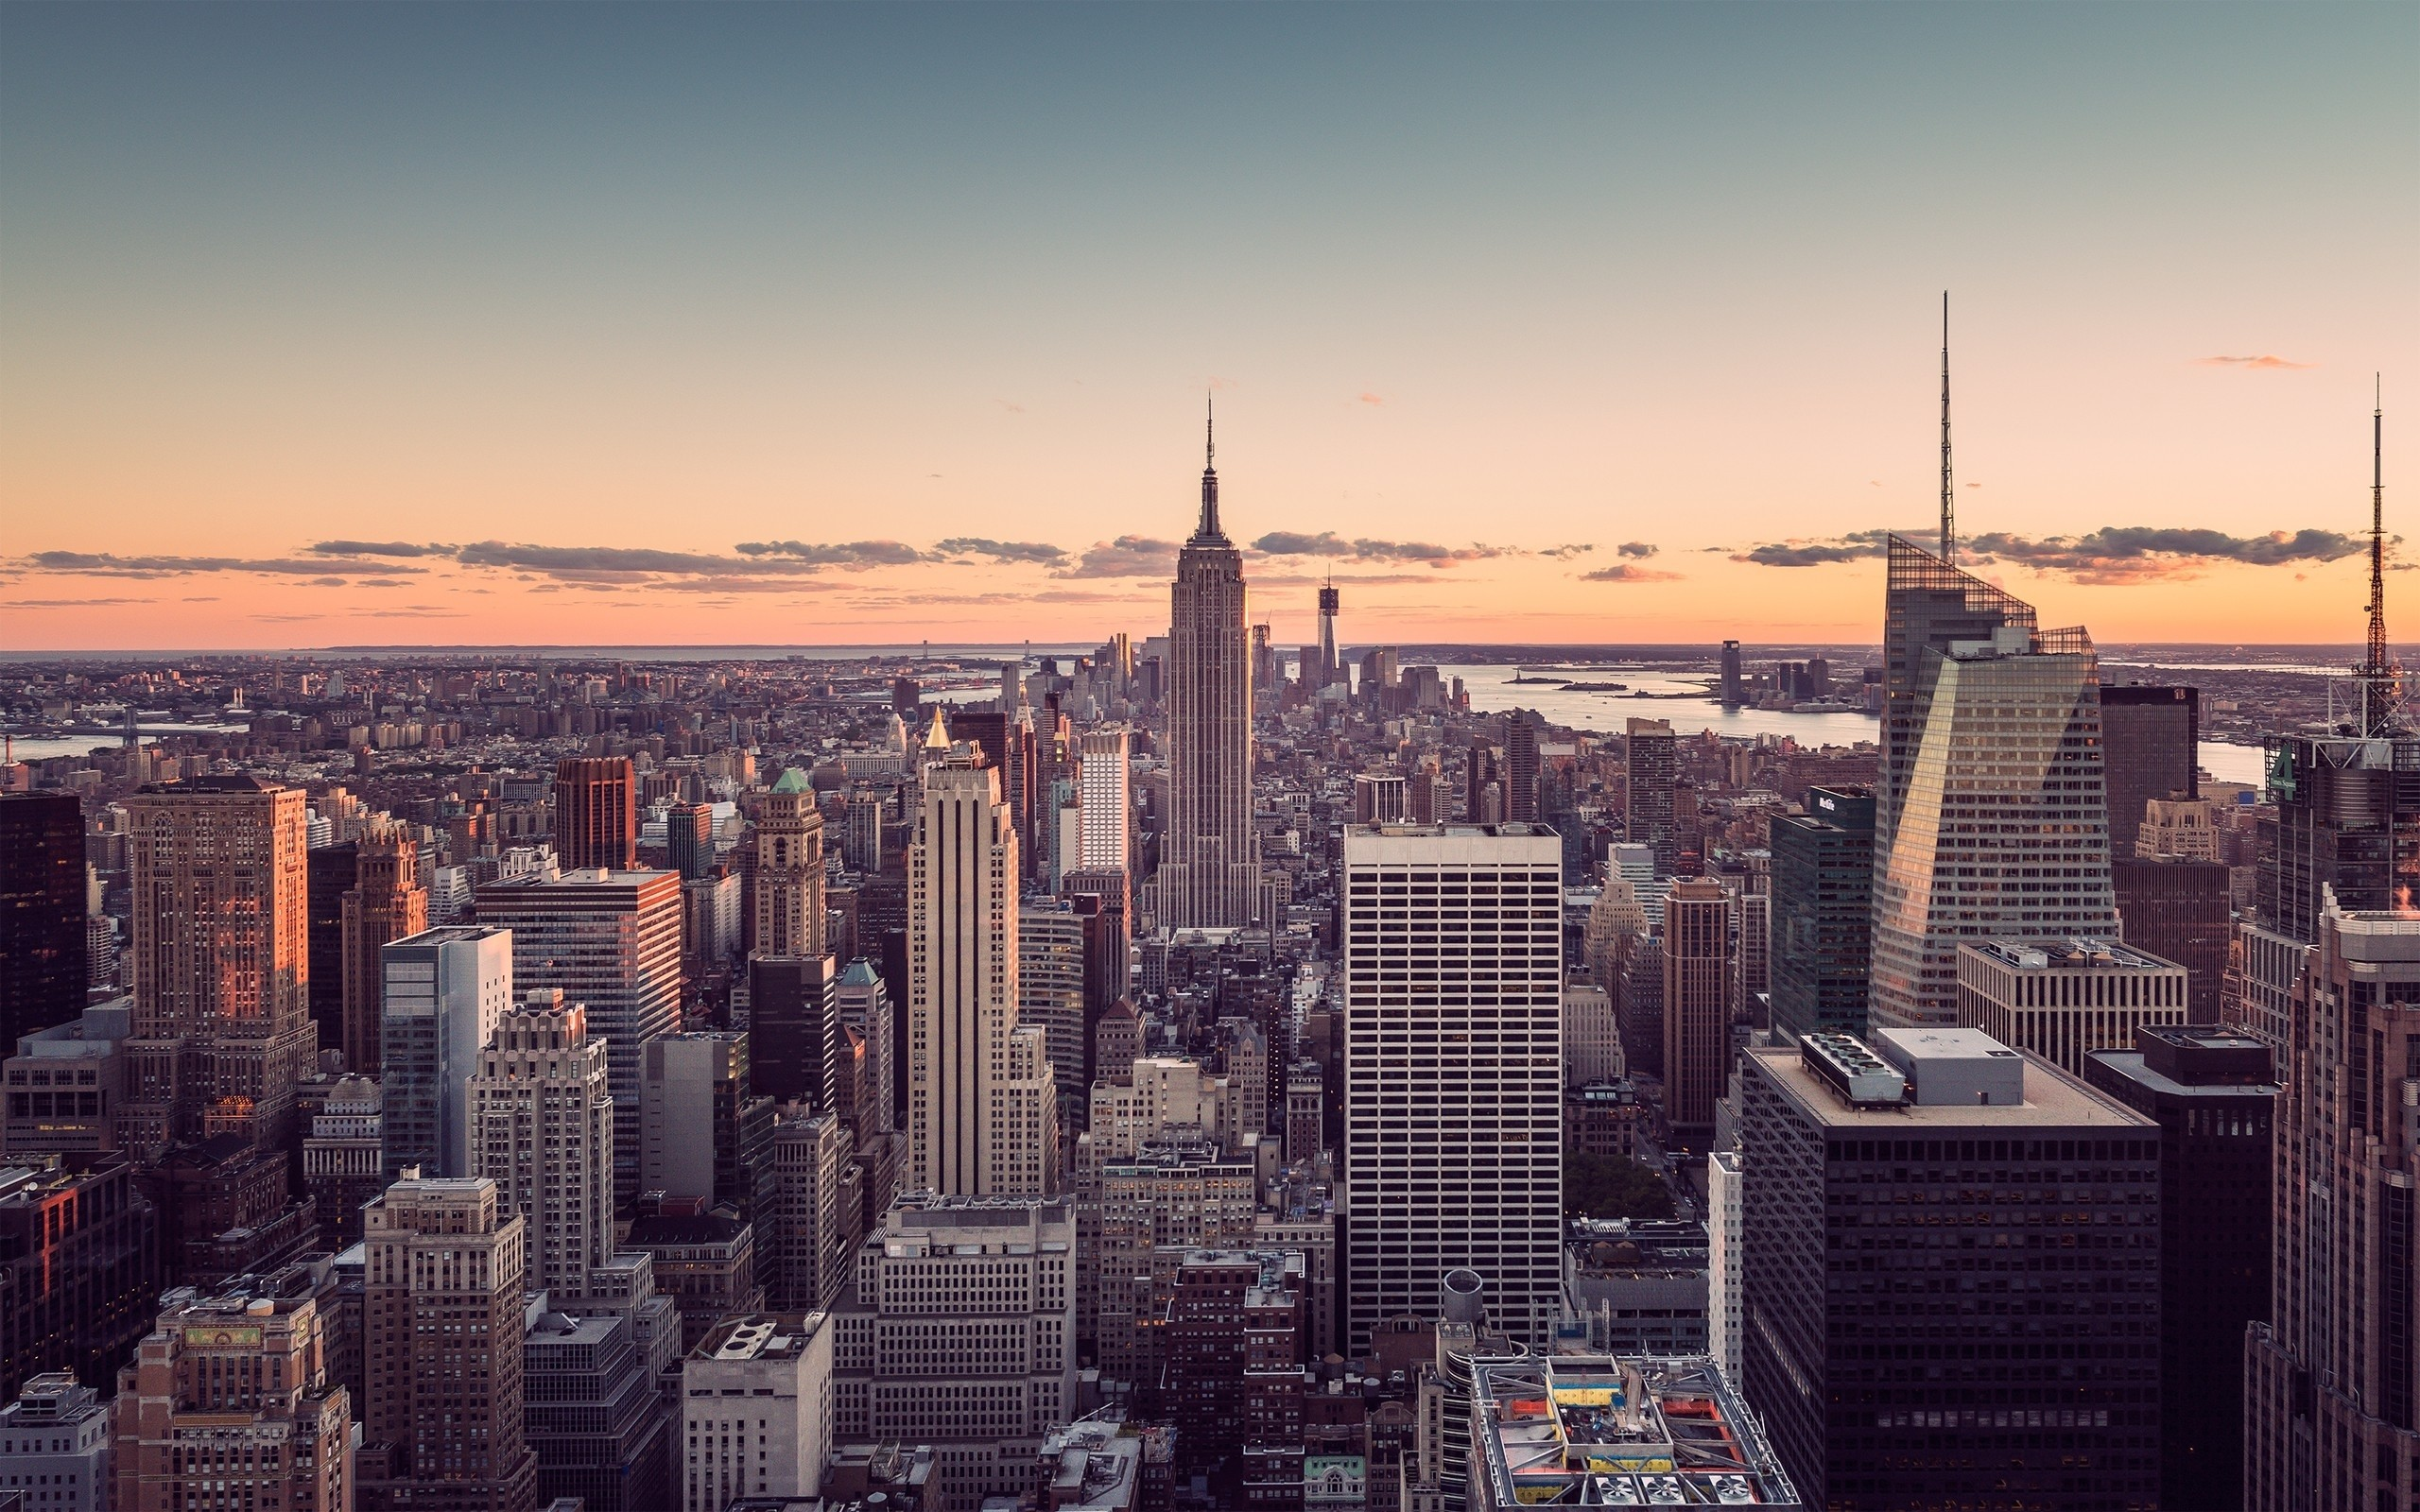 Download New York Wallpaper For Phone Gallery   Free Wallpapers   Pinterest    Wallpaper and Hd wallpaper